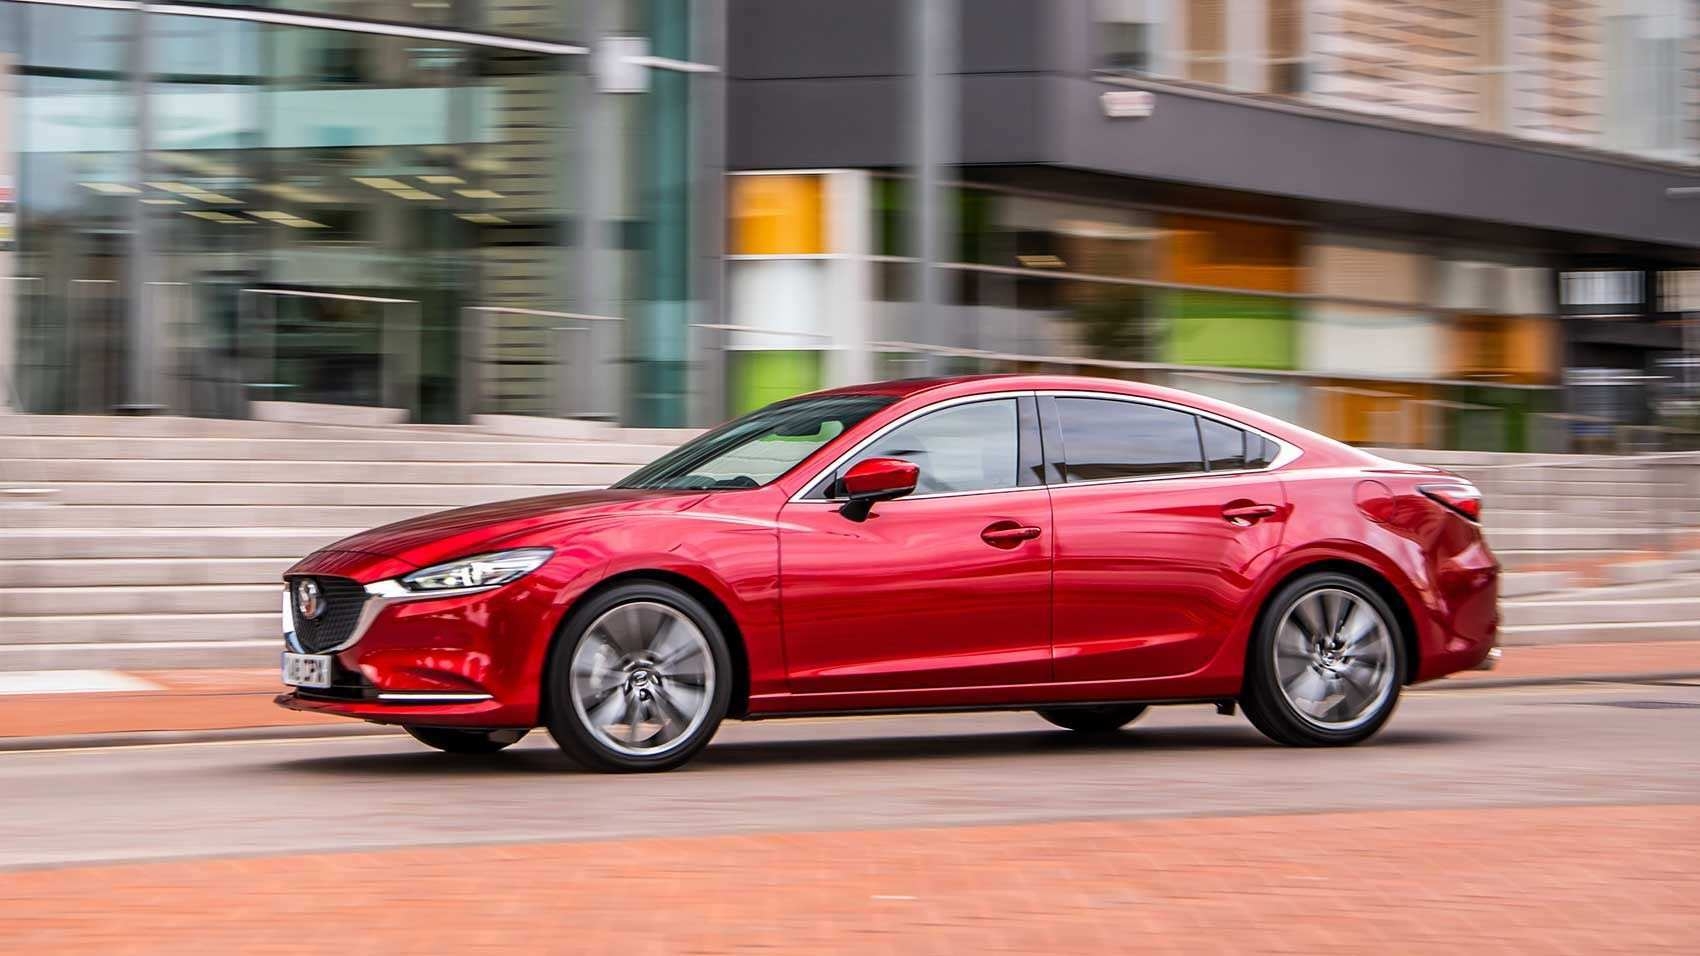 30 Concept of Mazda 6 2019 Europe Concept Redesign And Review Prices by Mazda 6 2019 Europe Concept Redesign And Review